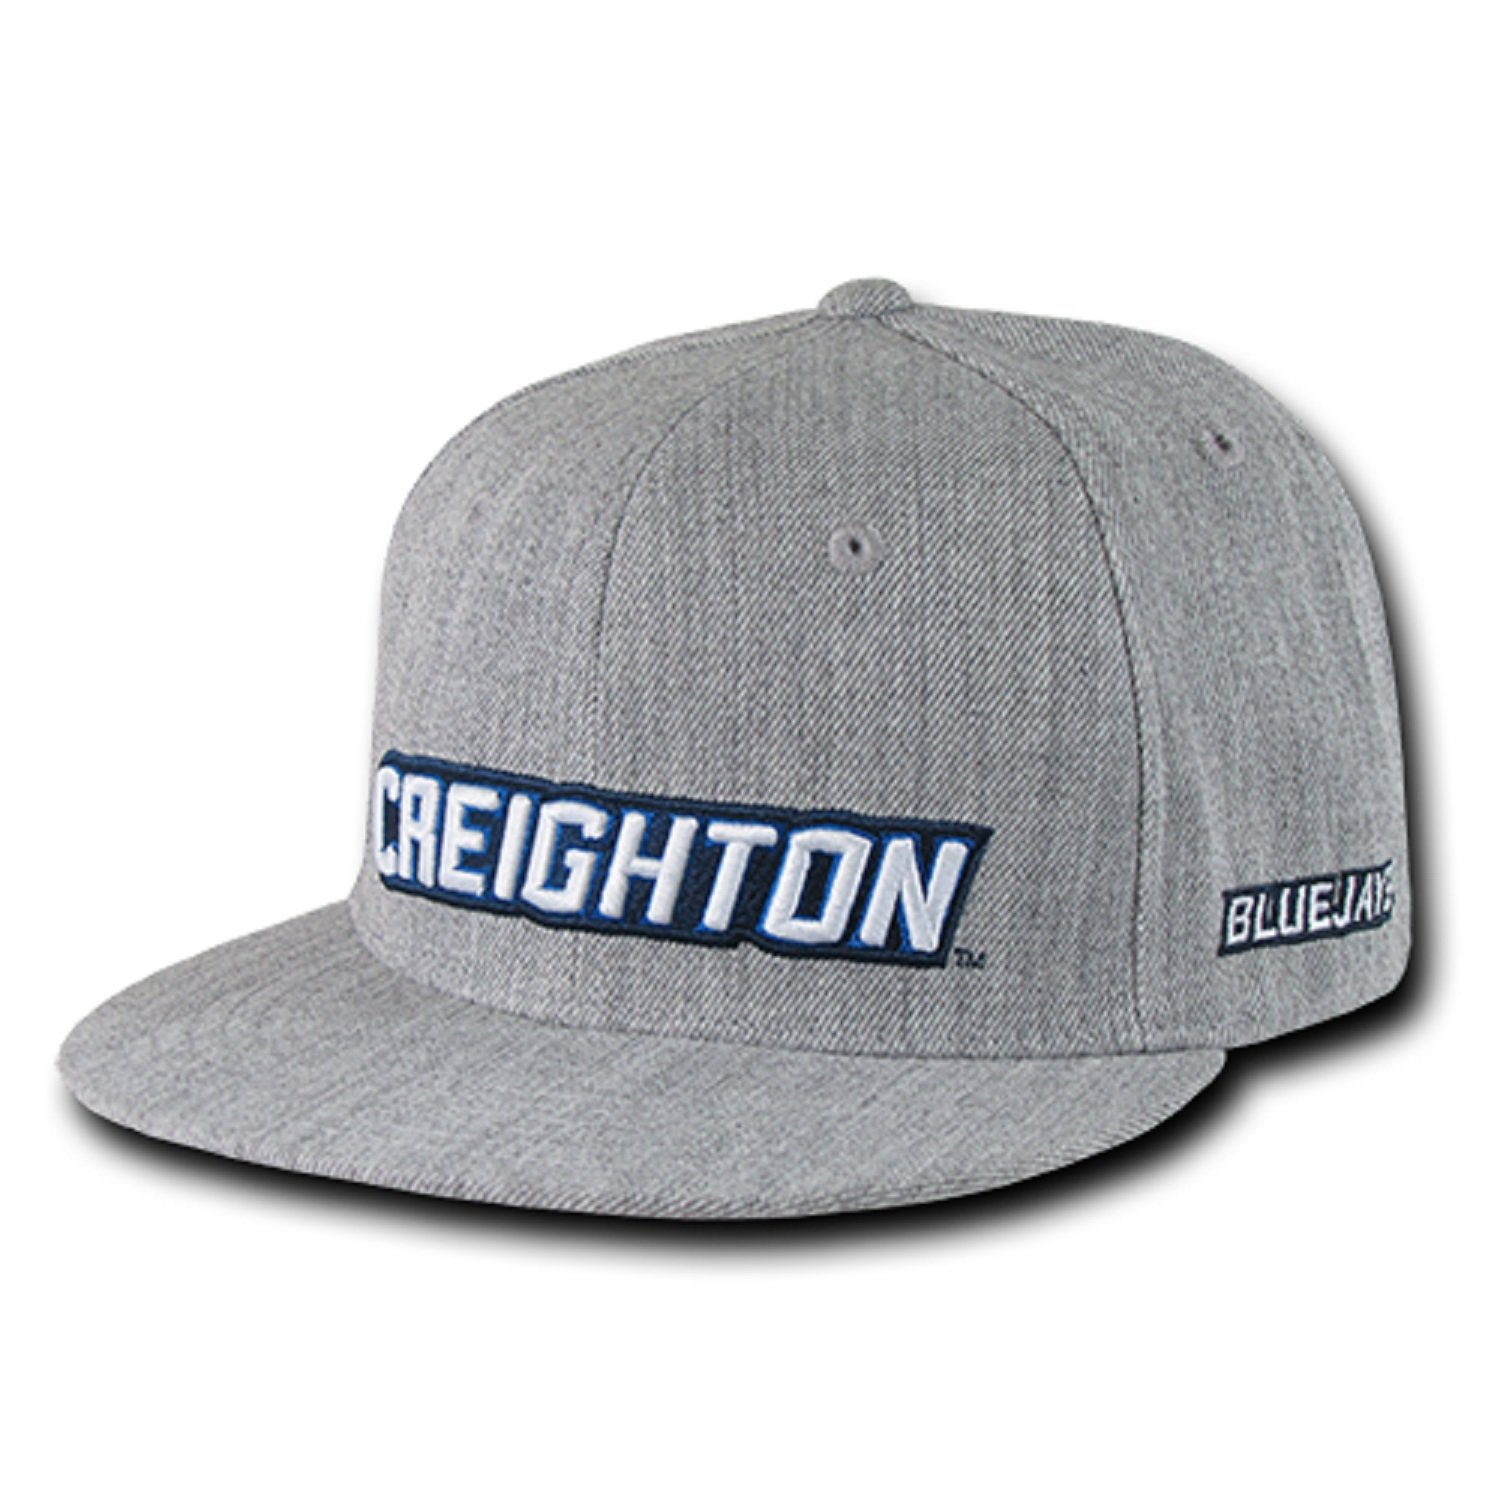 University of Creighton Bluejays NCAA Heather Gray Fitted Flat Bill Baseball Cap Hat Sizes Run Small